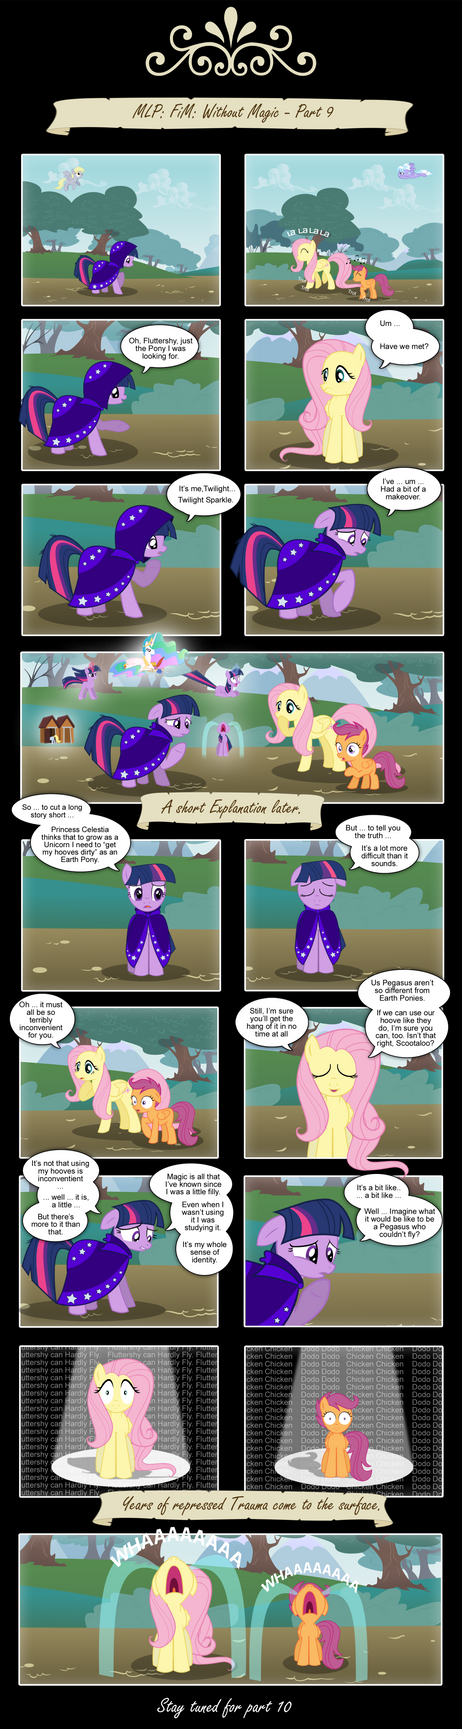 MLP: FIM - Without Magic - Part 9 by PerfectBlue97